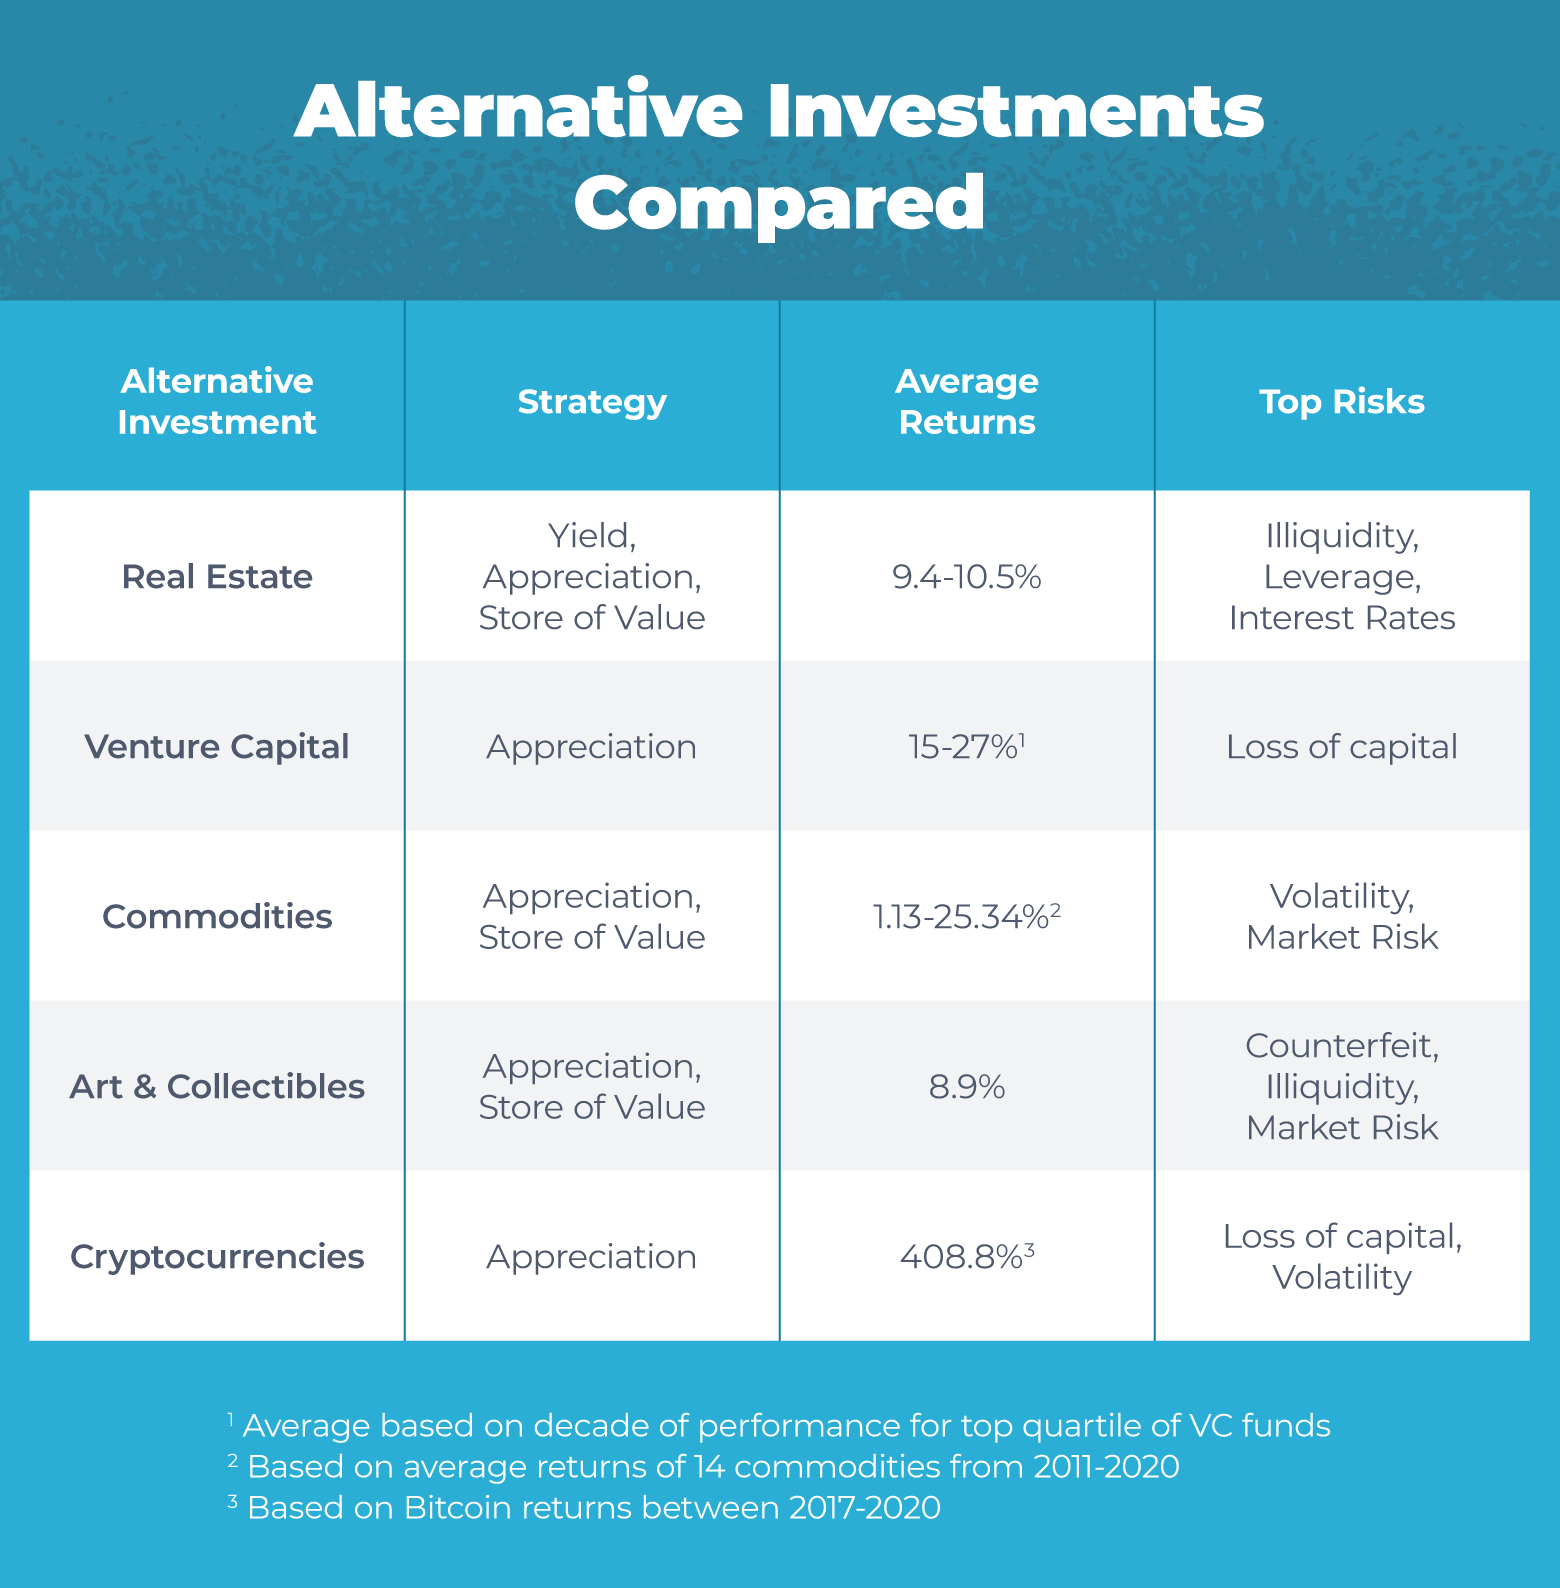 table comparing common alternative investments such as real estate, venture capital, commodities, art, collectibles, and cryptocurrencies.